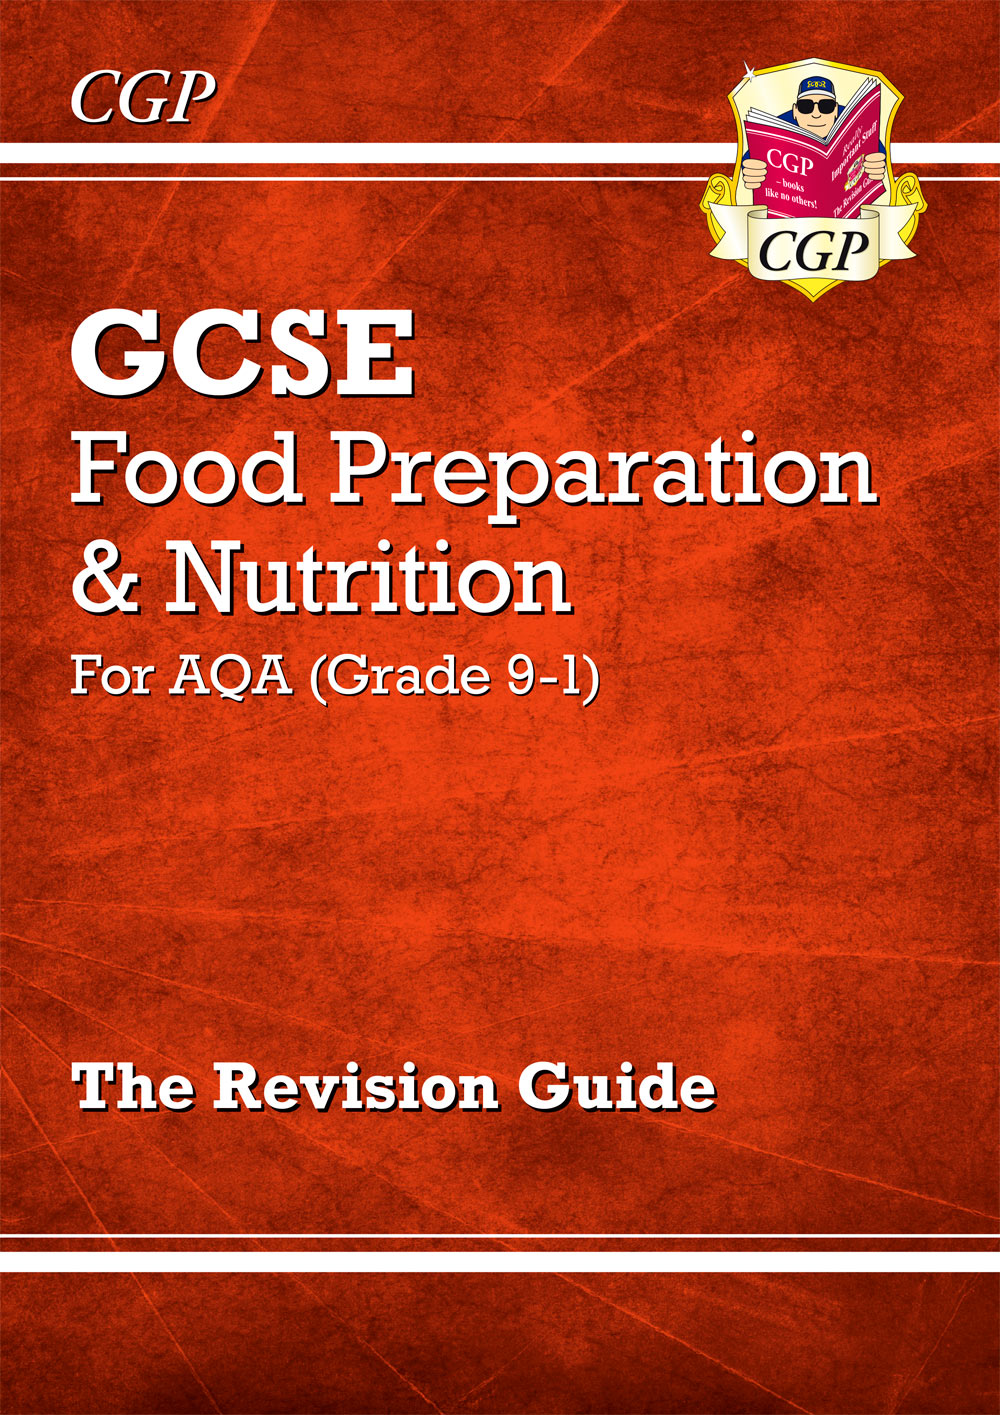 FNAR41 - Grade 9-1 GCSE Food Preparation & Nutrition - AQA Revision Guide